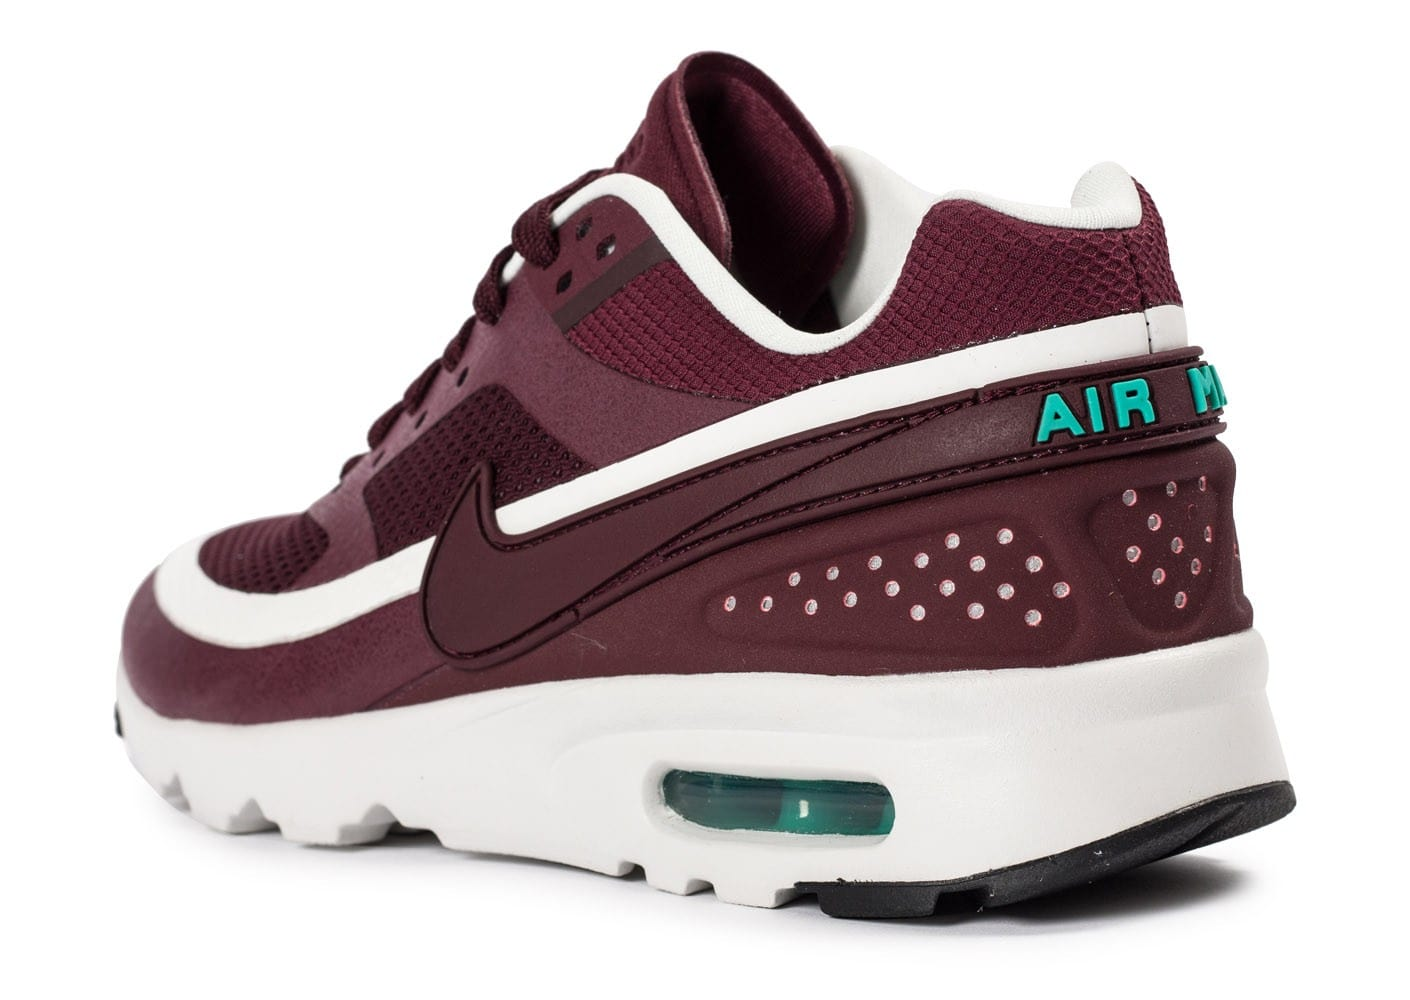 soldes nike air max bw ultra w bordeaux chaussures toutes les baskets sold es chausport. Black Bedroom Furniture Sets. Home Design Ideas